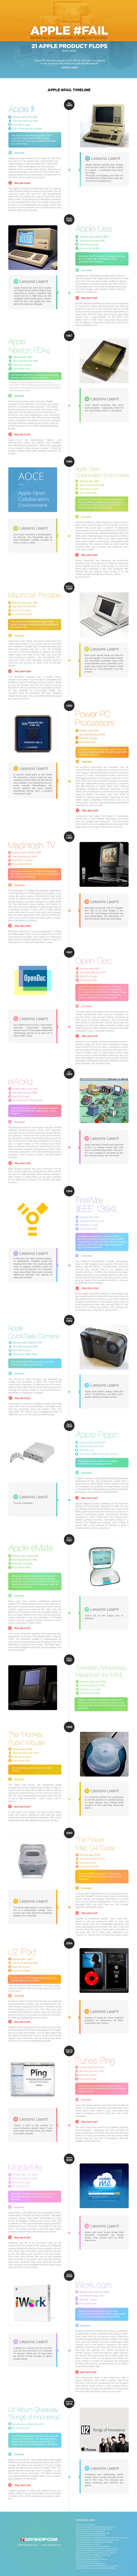 Apple Fail Infographic